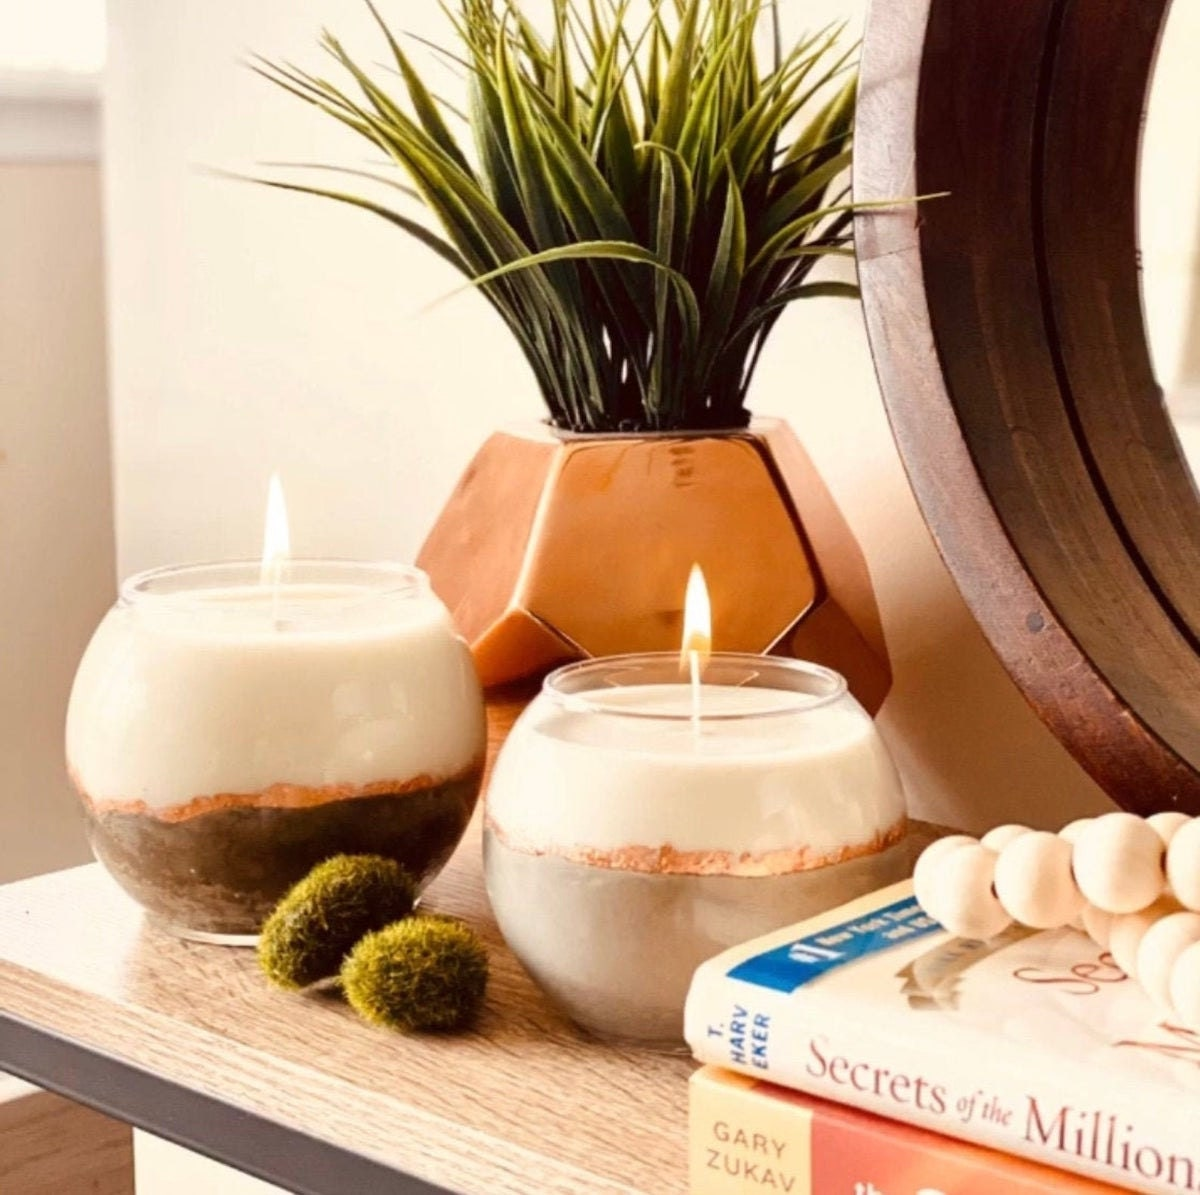 Concrete and rose gold candles from Perpetual Bliss Co. on Etsy